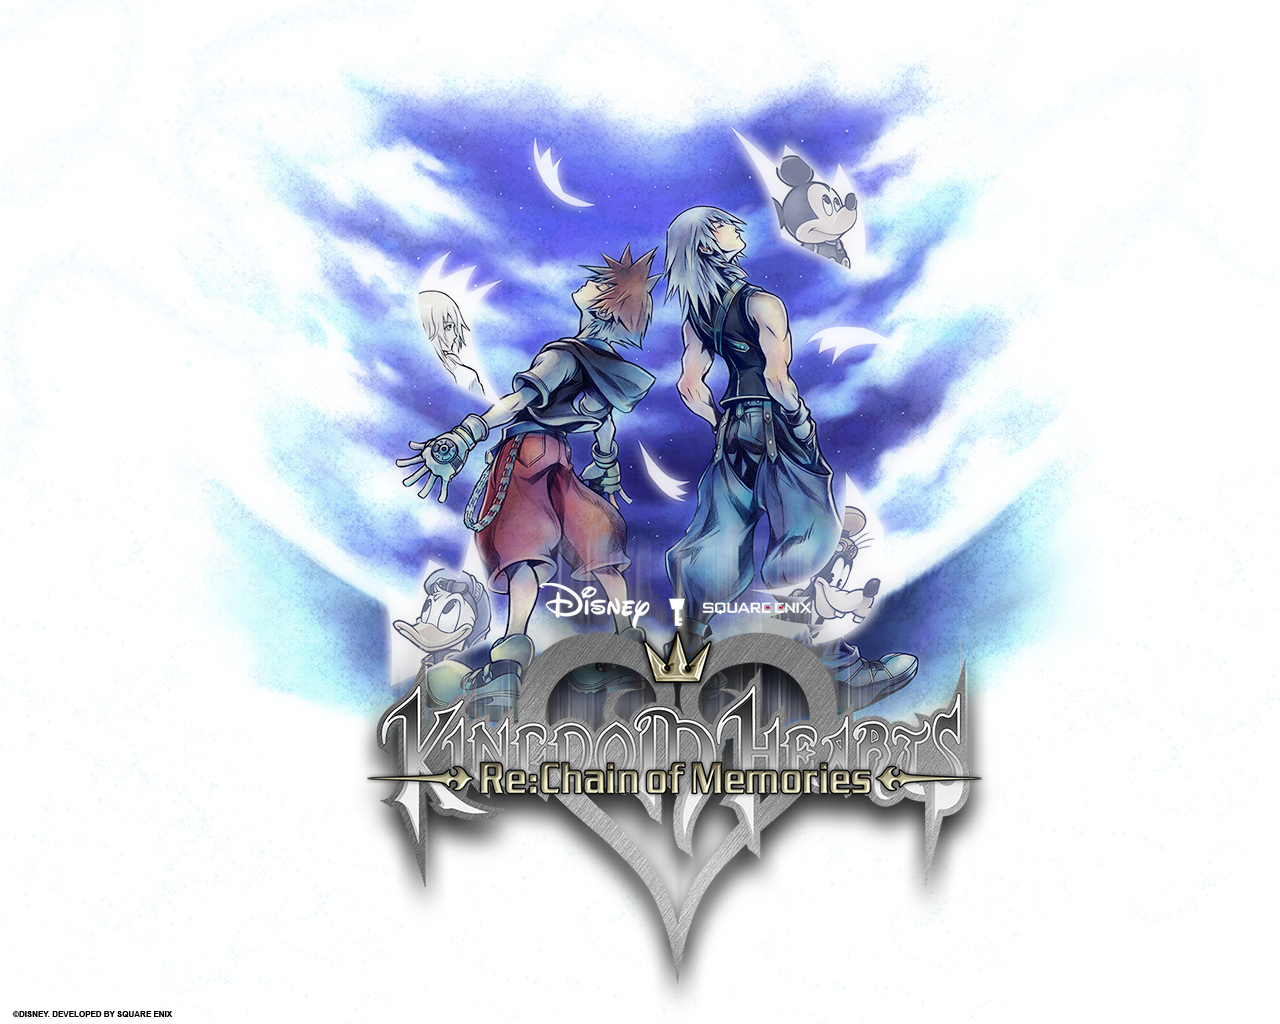 Official Kingdom Hearts Wallpaper   Kingdom Hearts Wallpaper 2754134 1280x1024